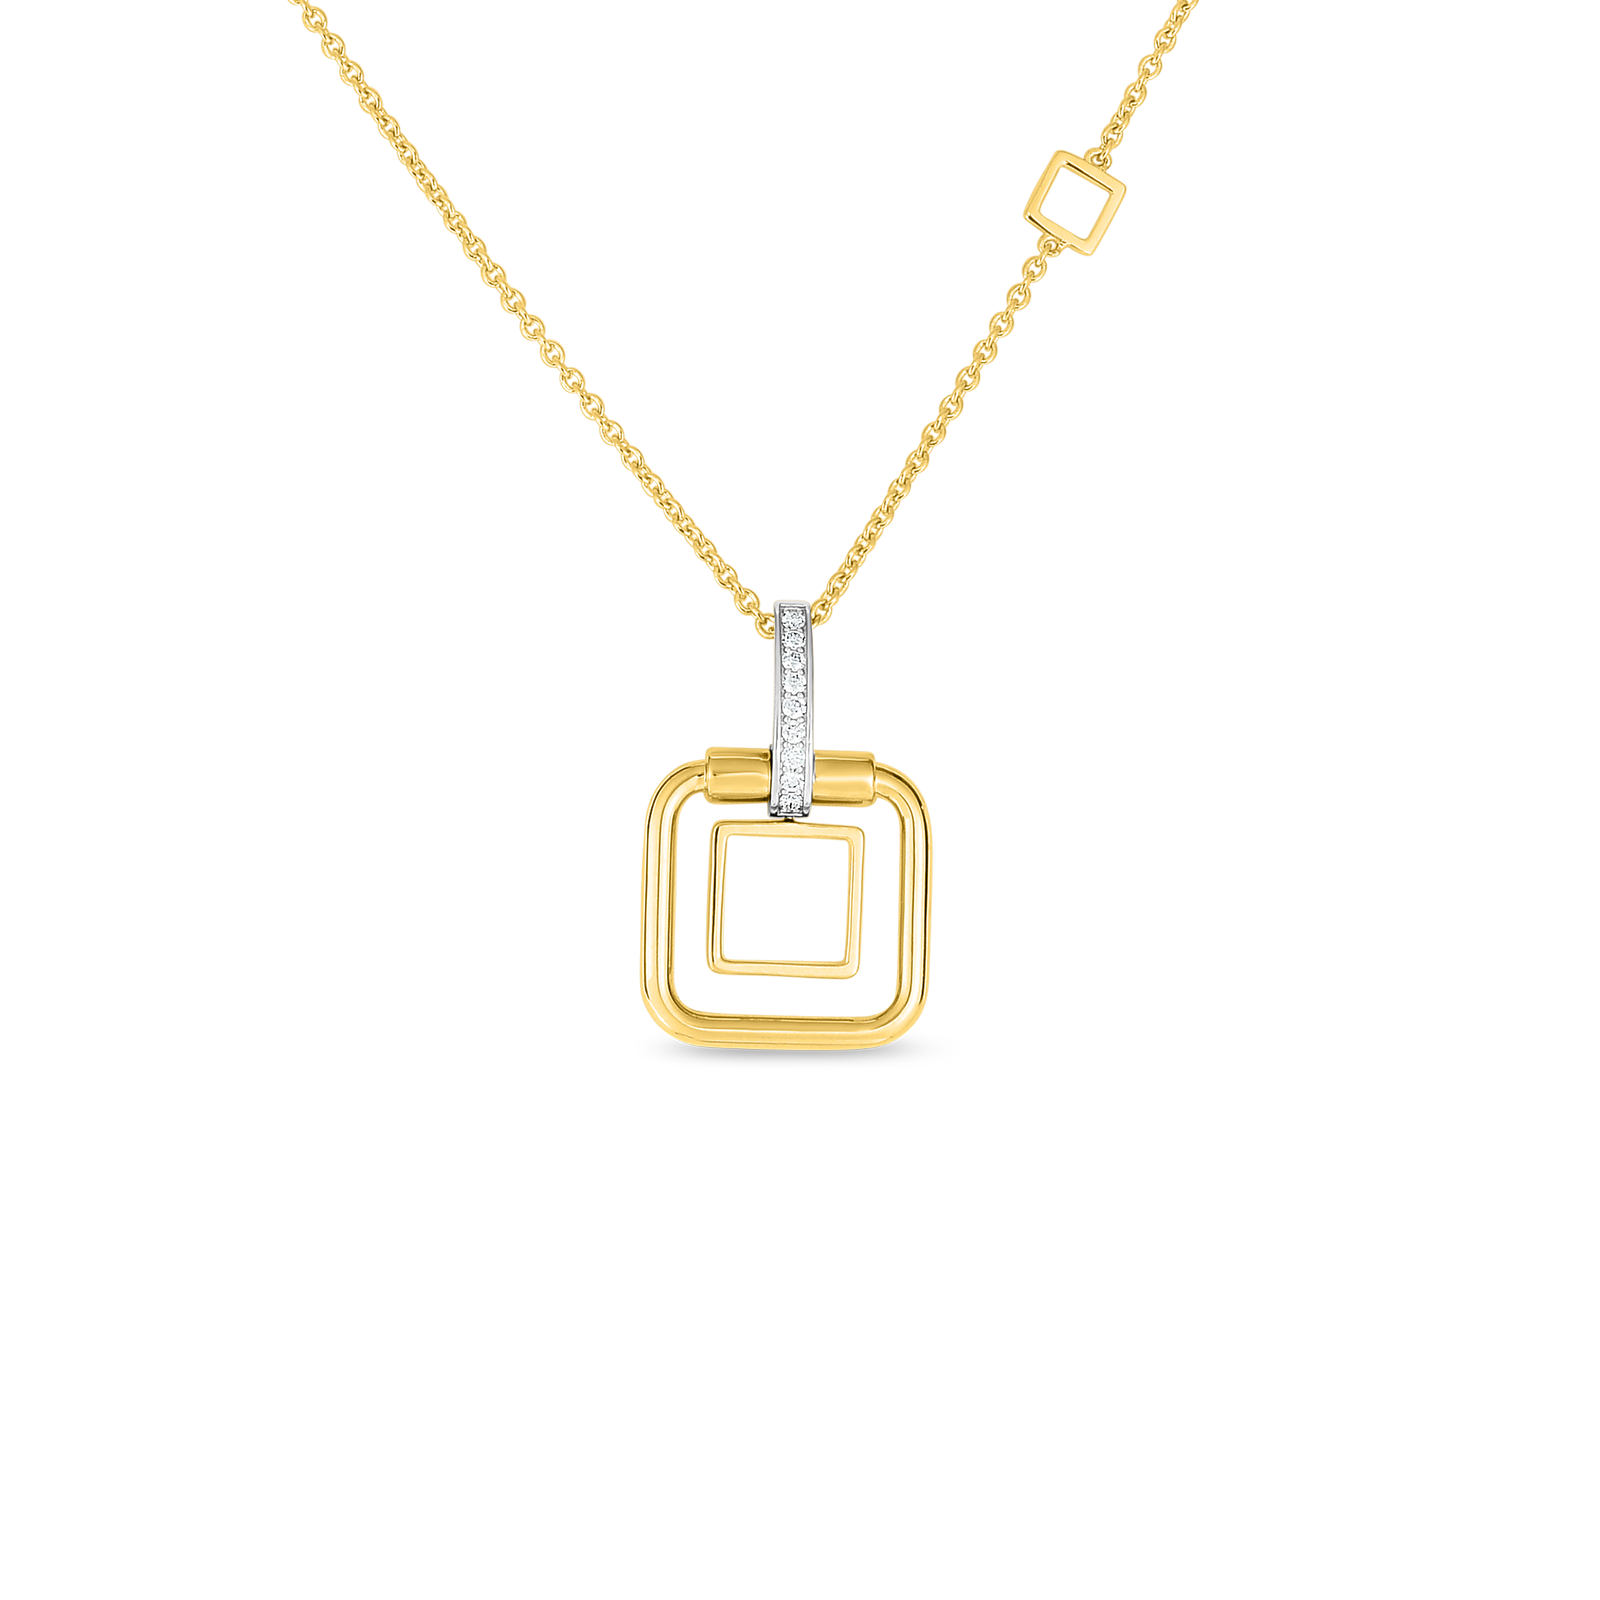 18k sm double square pendant with diamond accent on chain